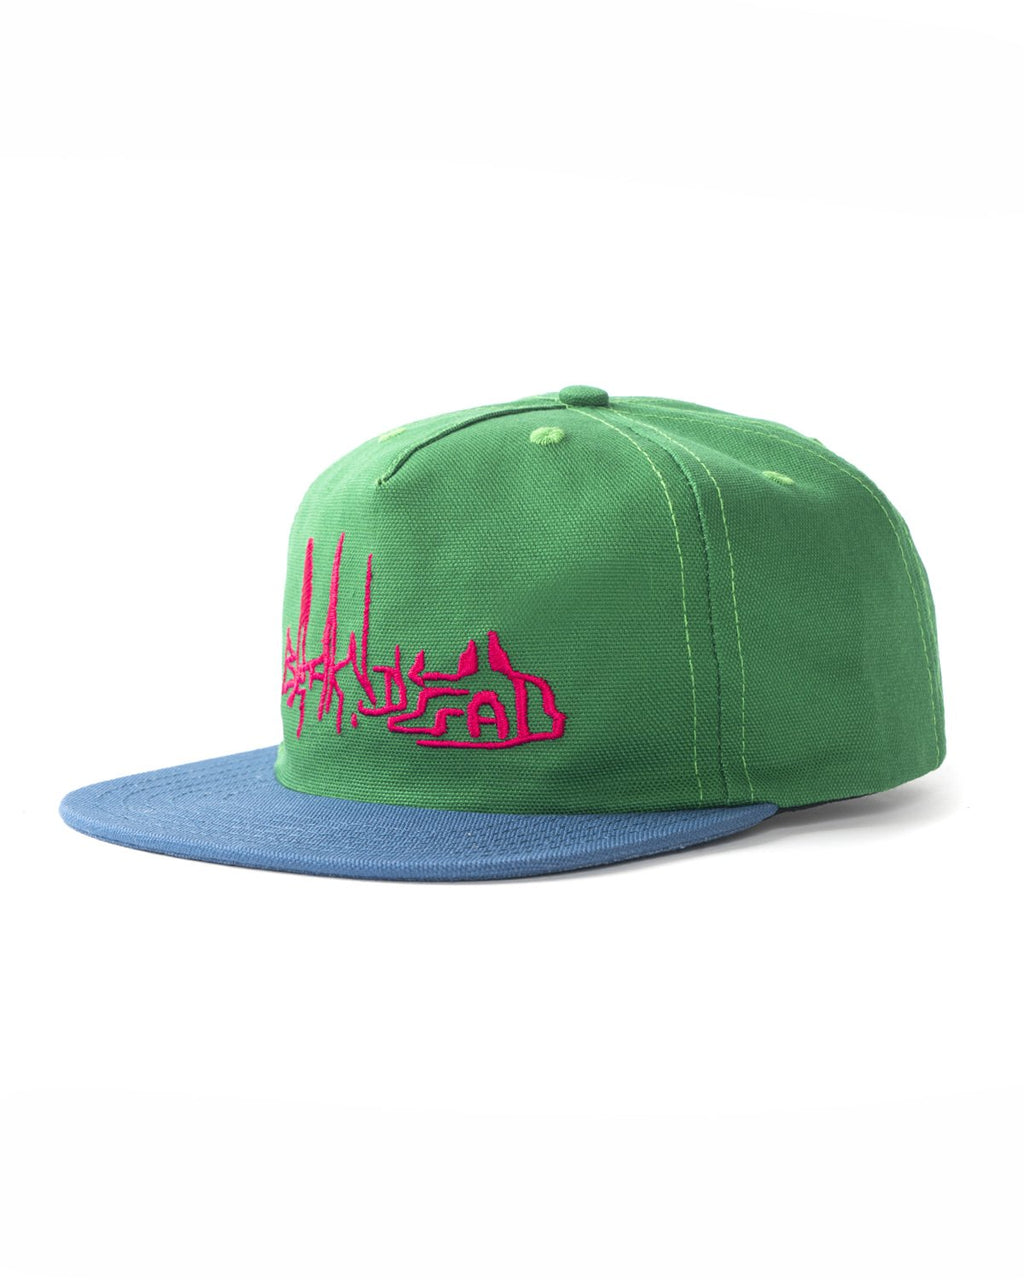 DISTORTED TEXT FIVE PANEL STRAPBACK